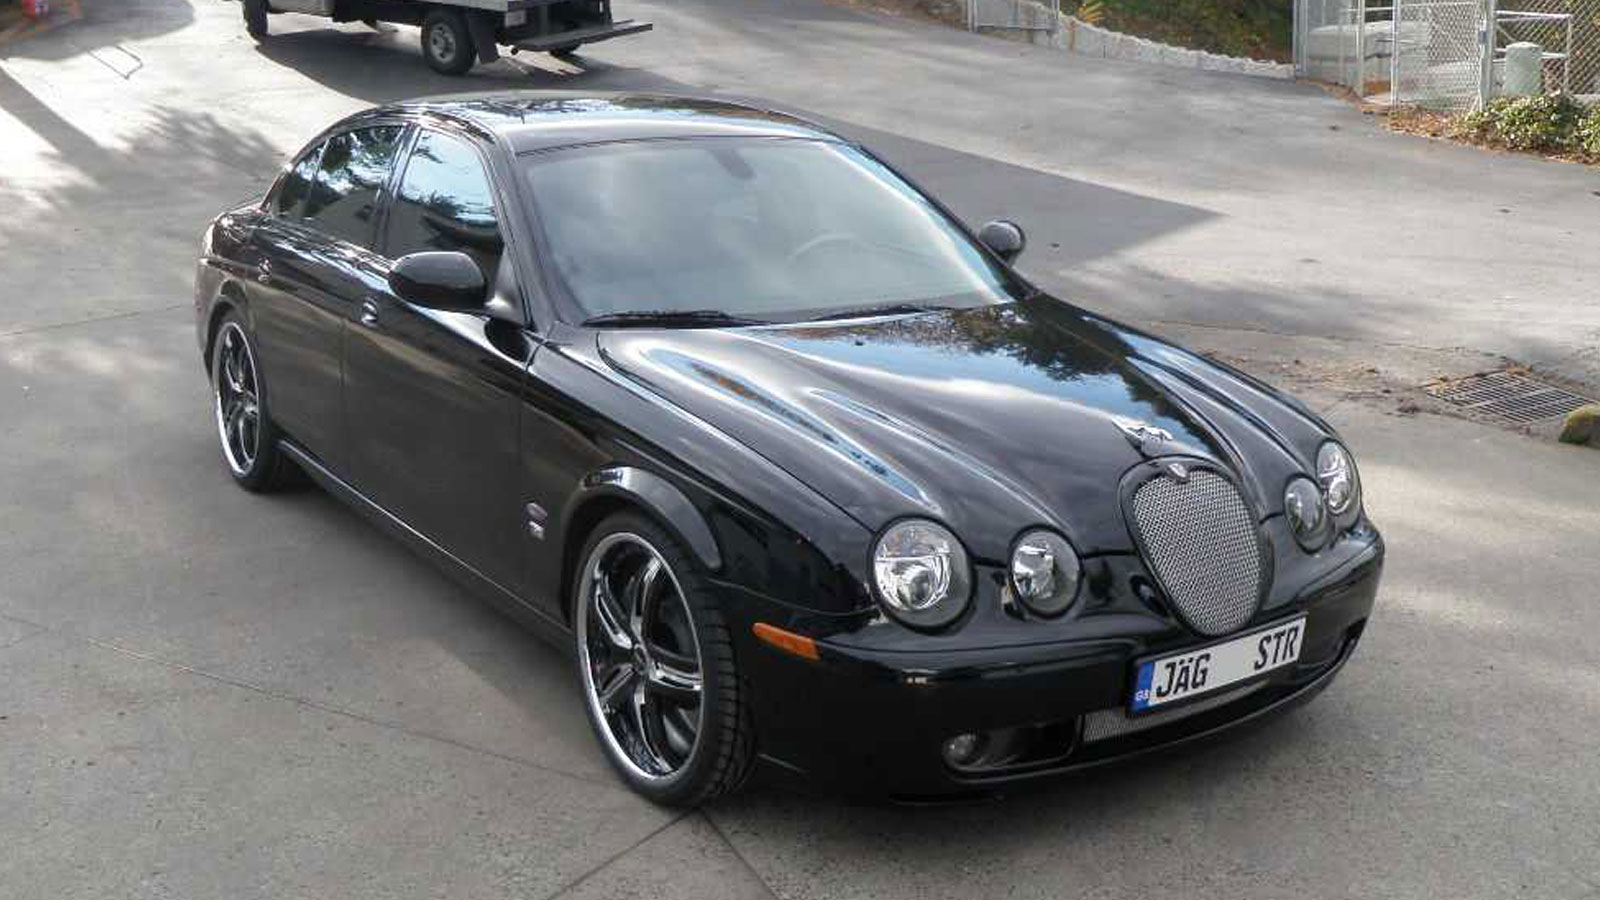 Jaguar S-Type R illusion Gallery - MHT Wheels Inc.